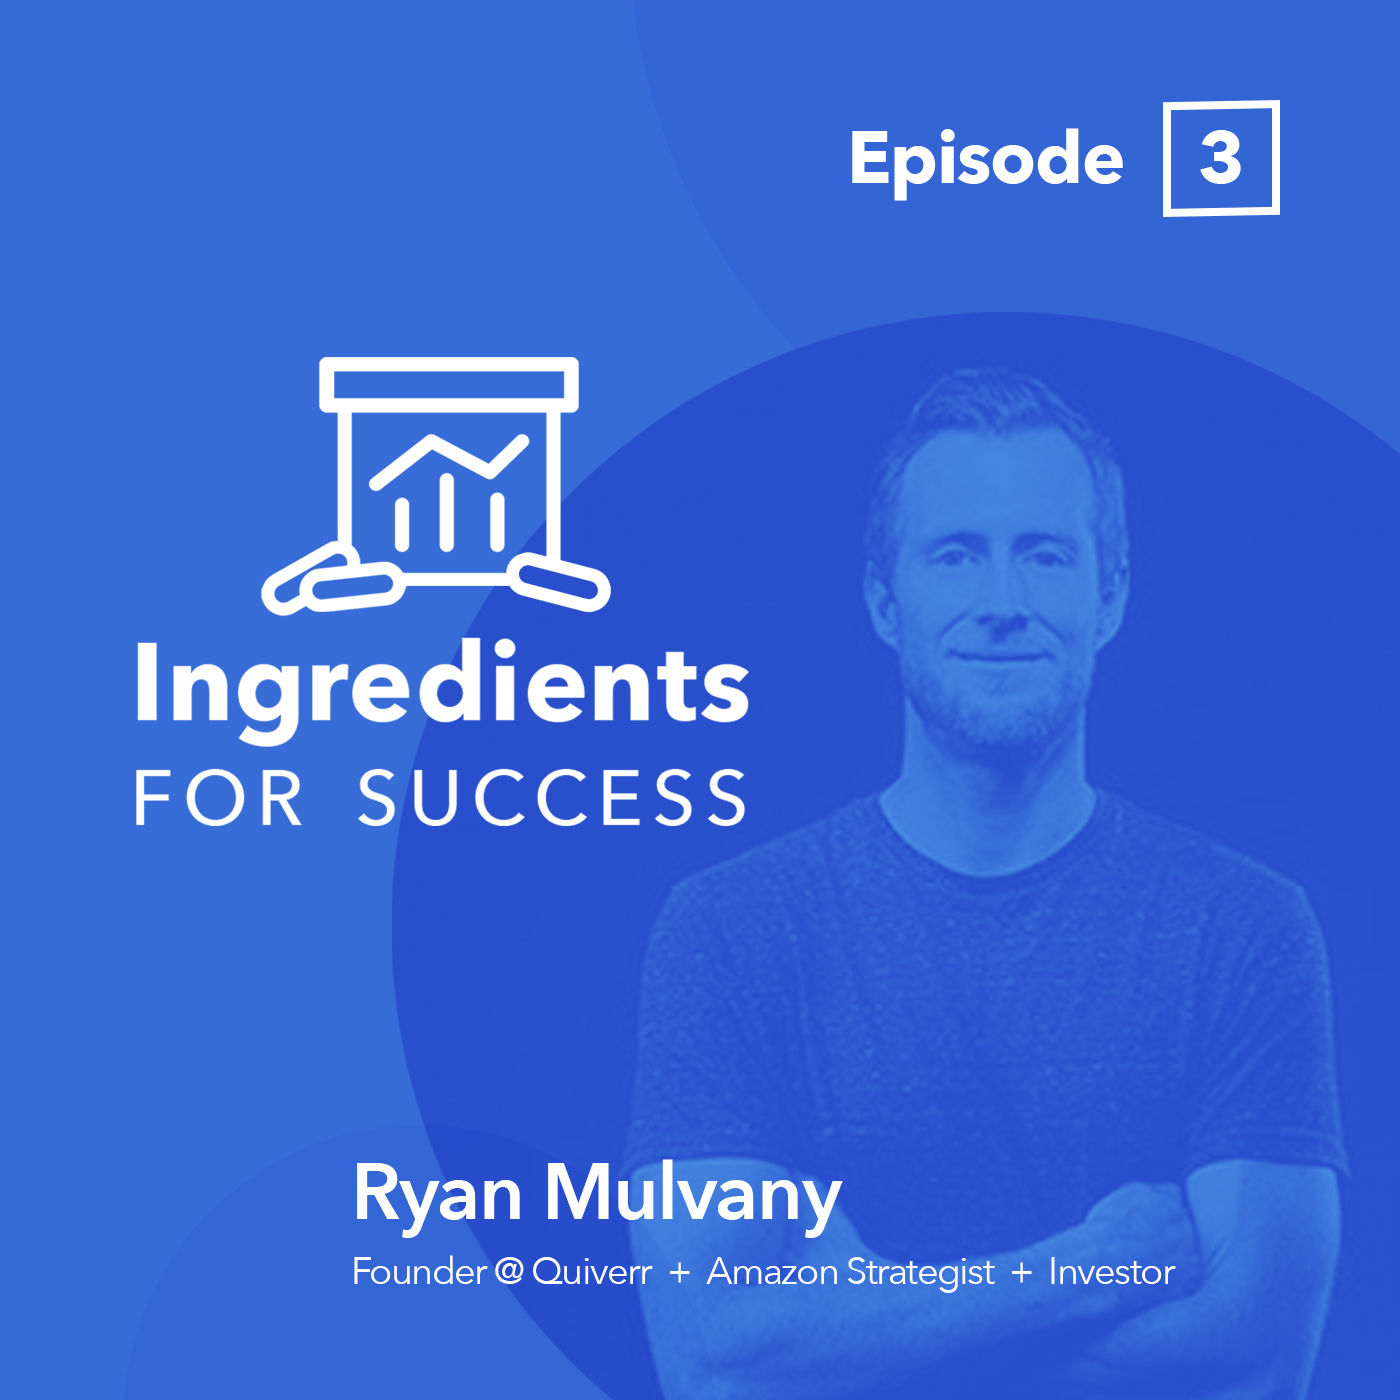 Natural Health Supplement Amazon Trends: Interview with Ryan Mulvany, Founder of Quiverr